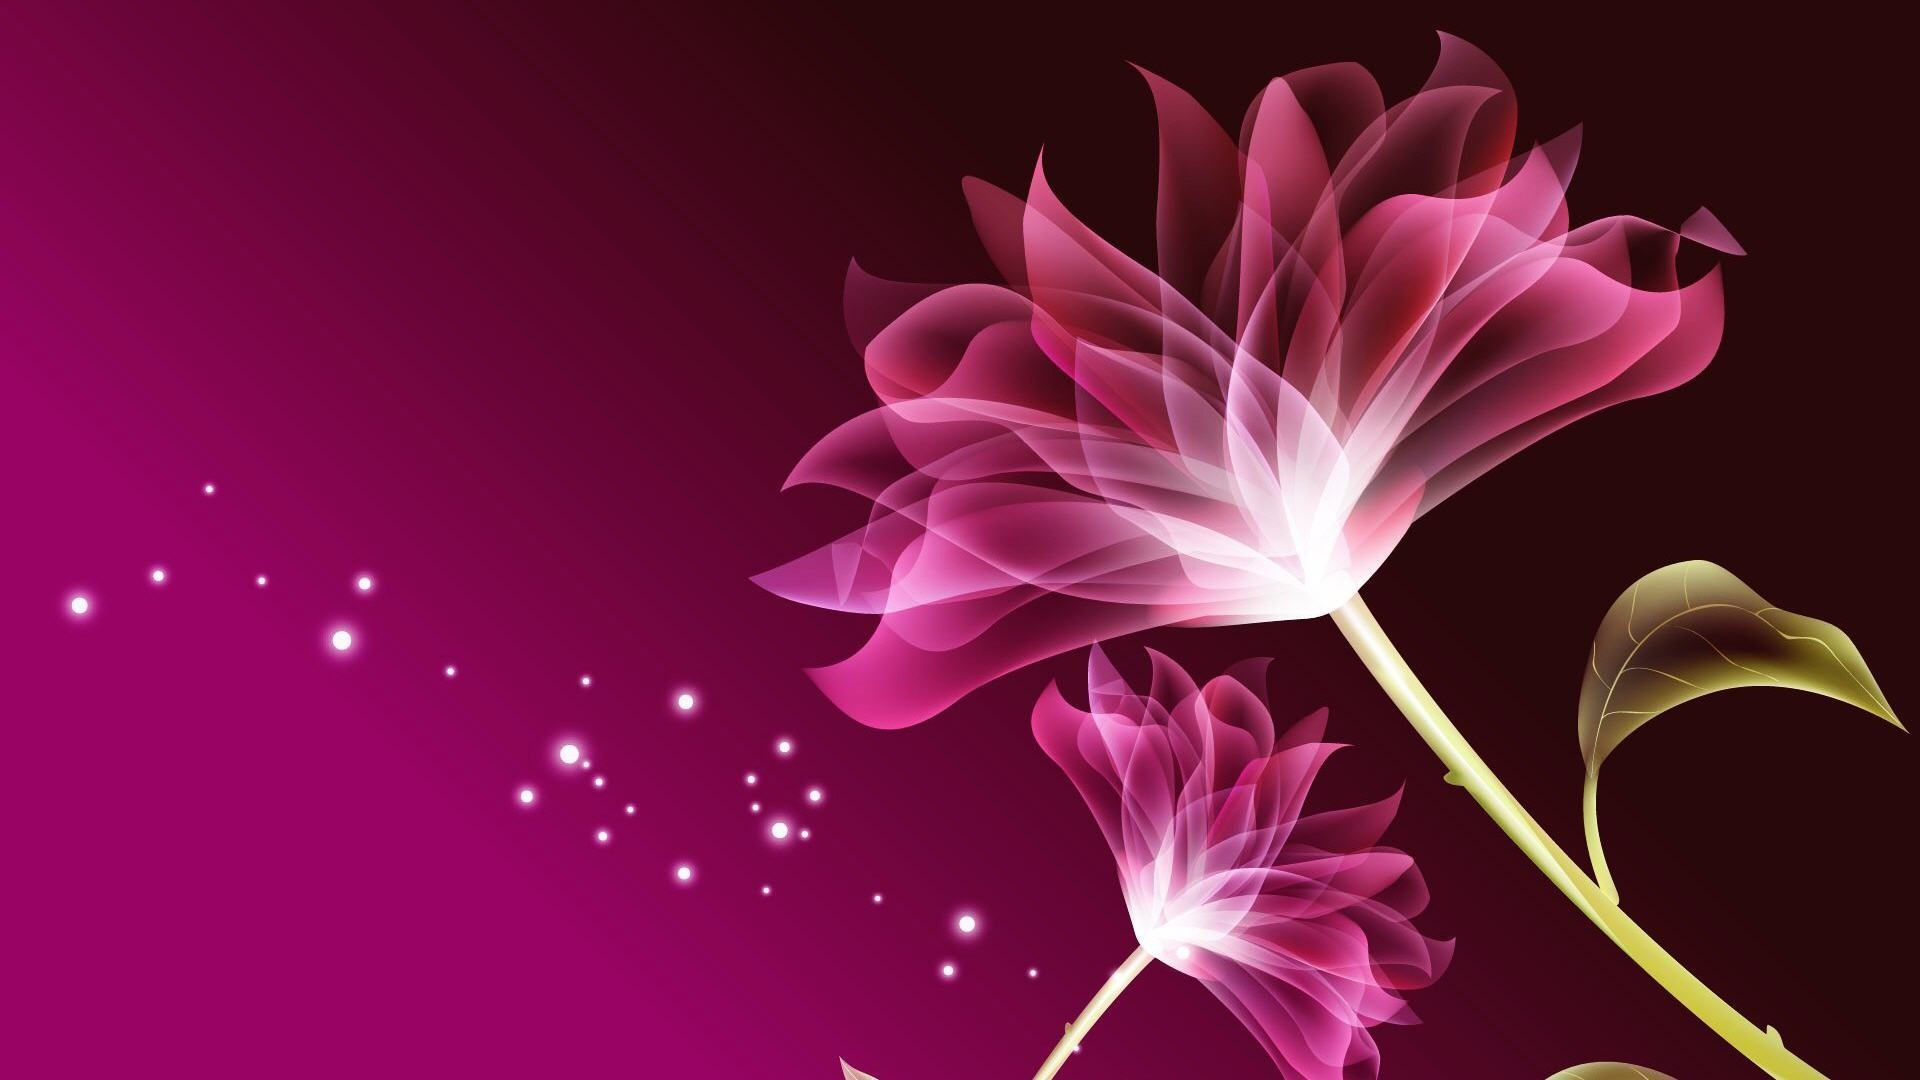 HD 3d wallpapers – full hd 3d wallpapers 1920×1080 pics by md.sopon1